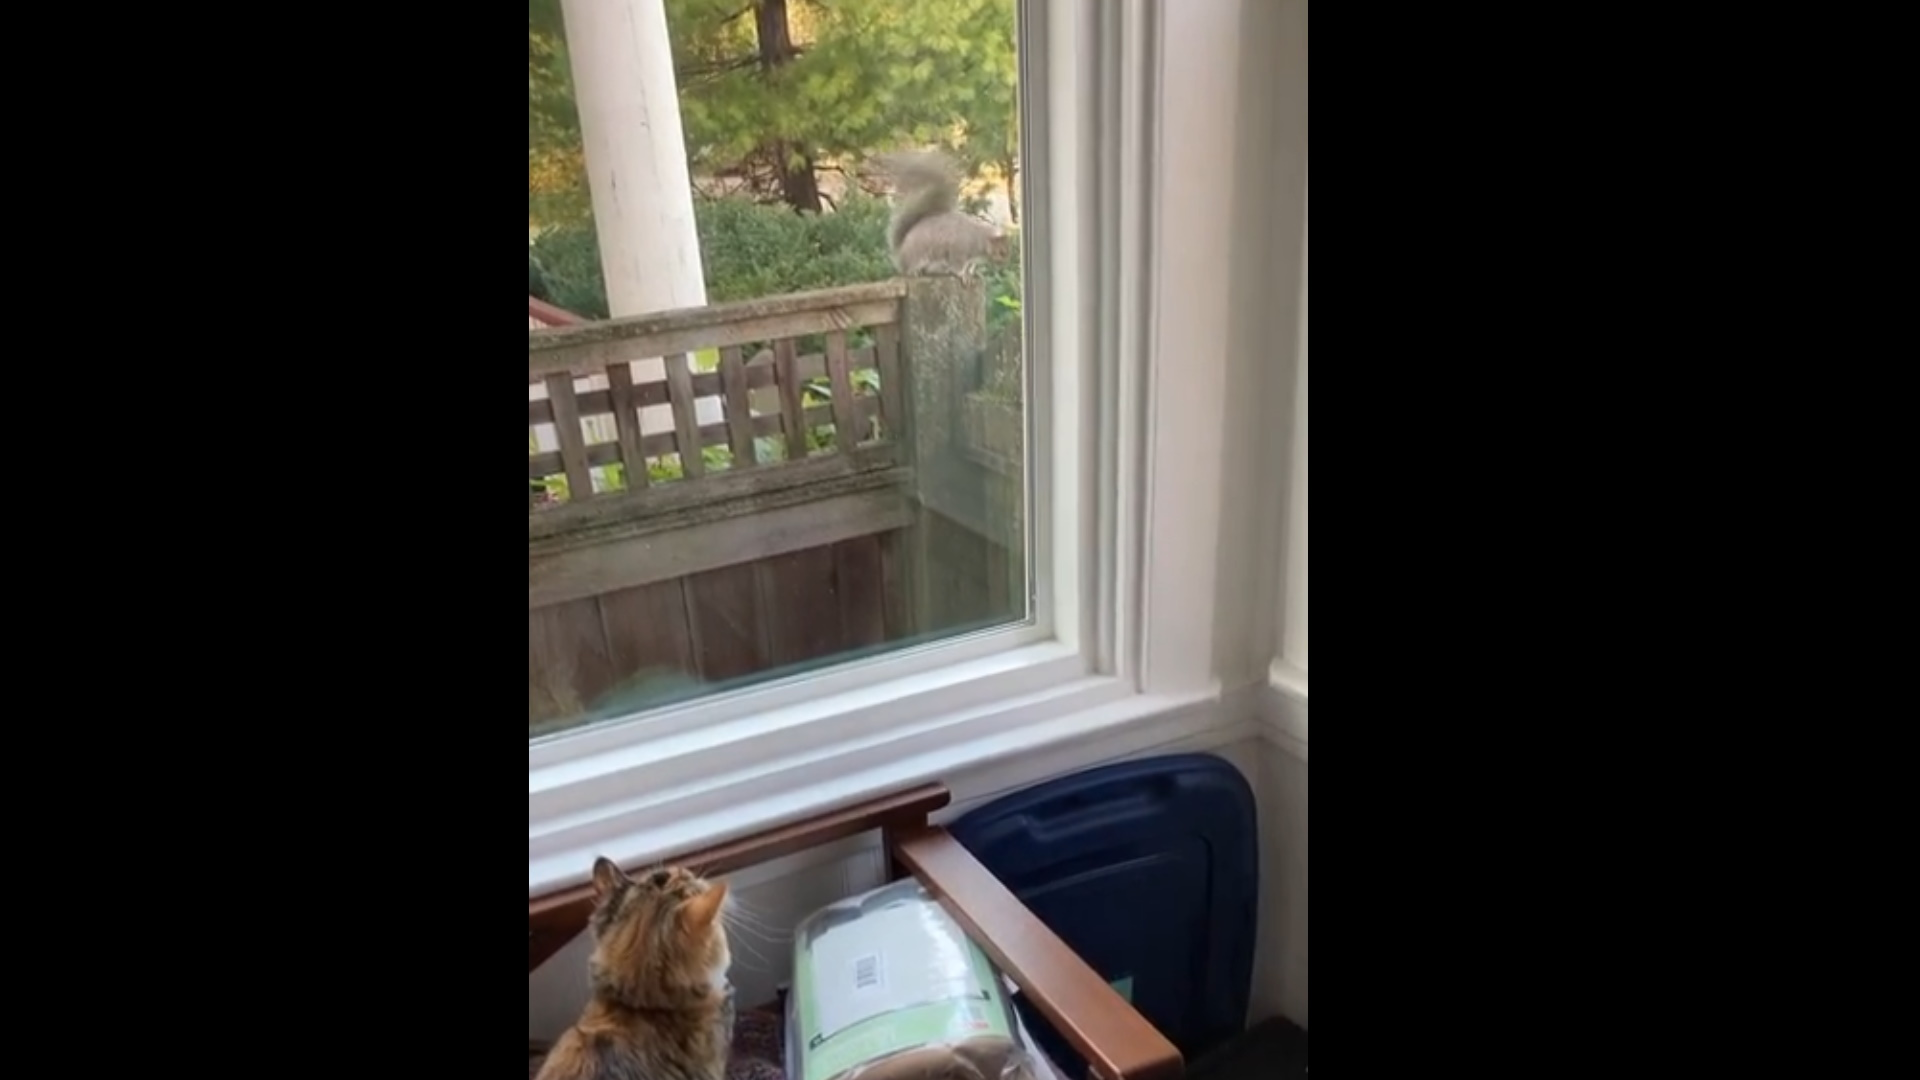 Harassed by a squirrel